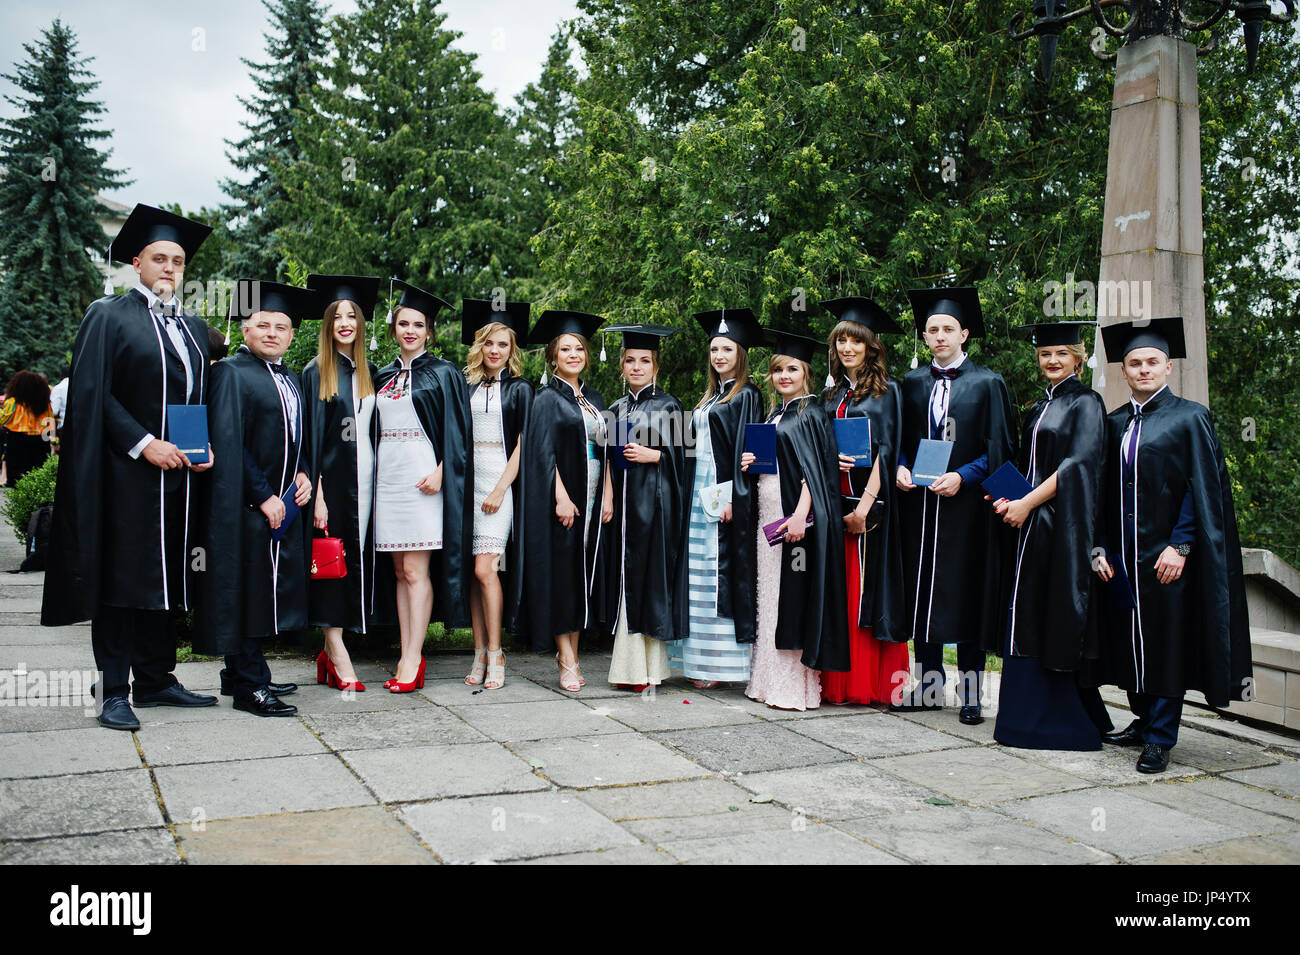 Huge group of graduates in graduation gowns and caps posing outdoor ...